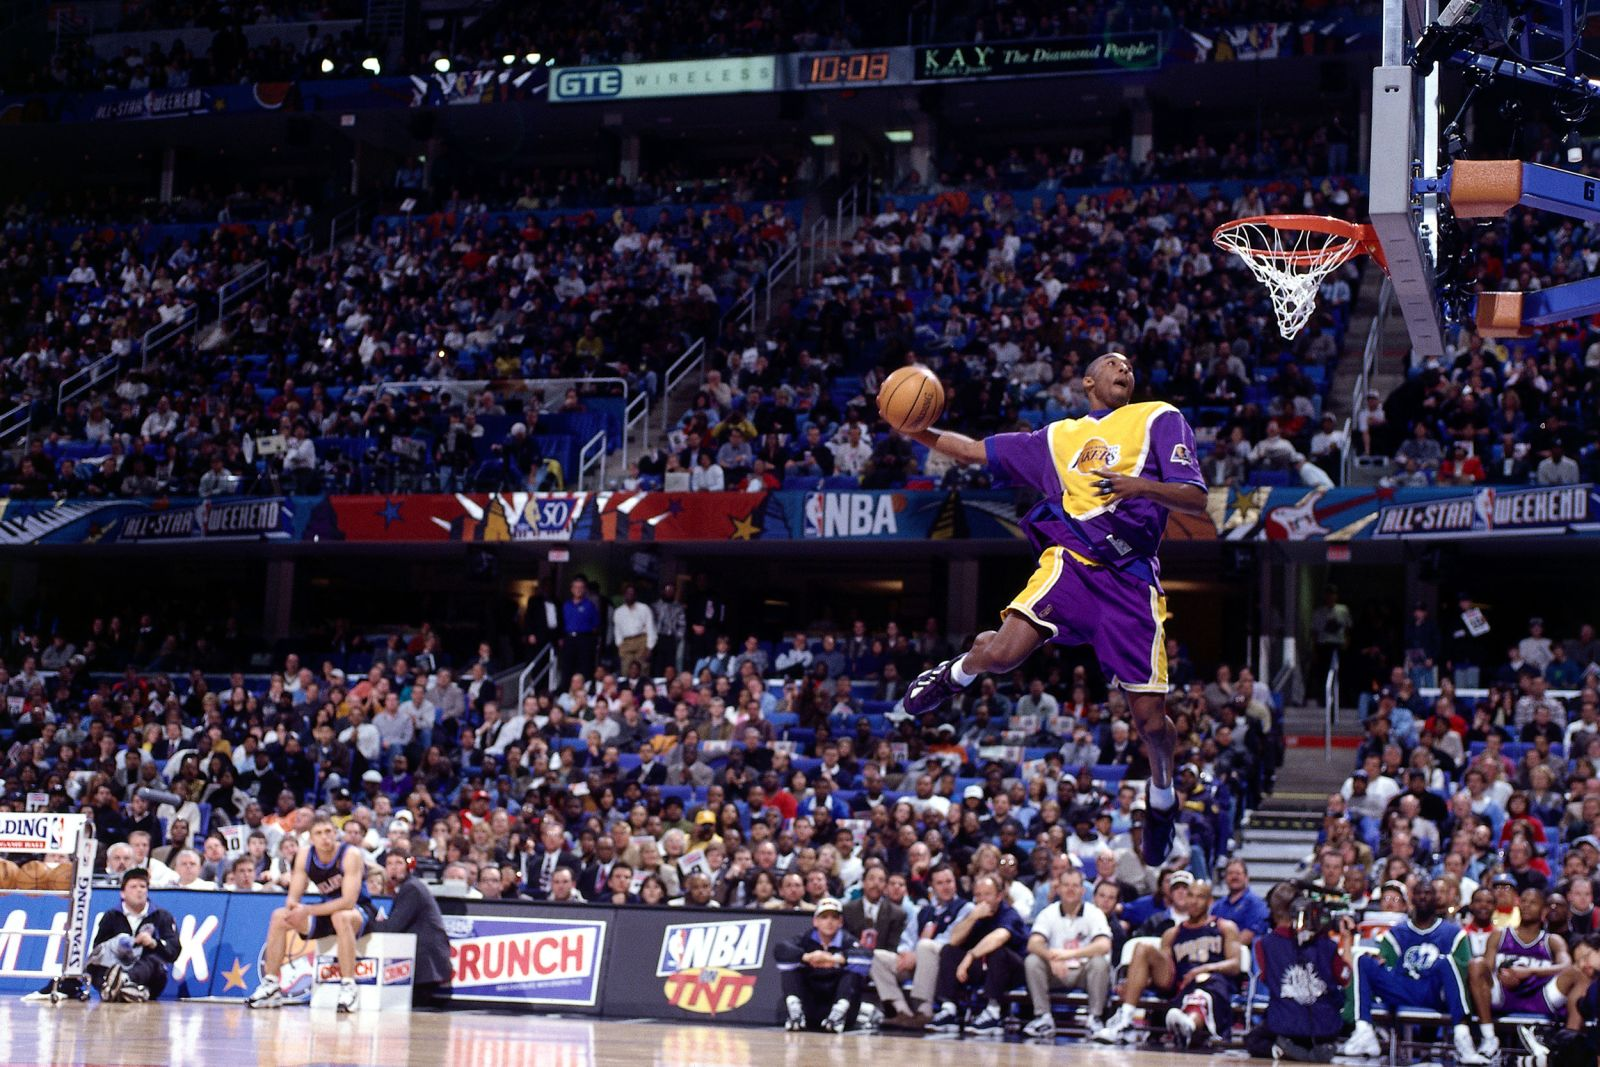 Kobe Bryant eyes the basket during the 1997 NBA Slam Dunk contest in Cleveland. Bryant was the youngest player to win the contest. (Courtesy of CNN)